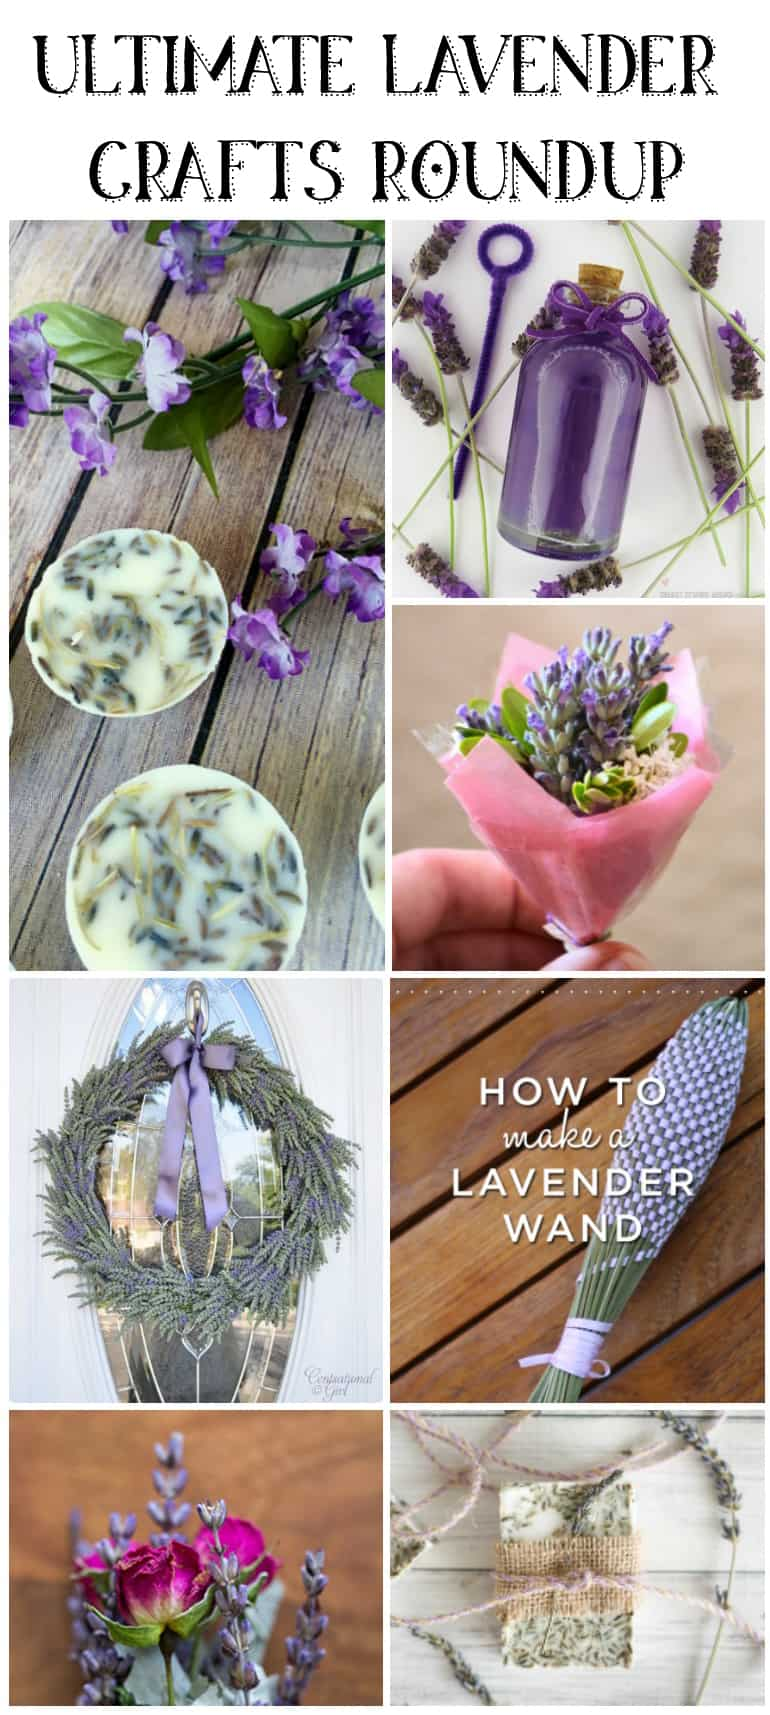 ultimate lavender crafts roundup